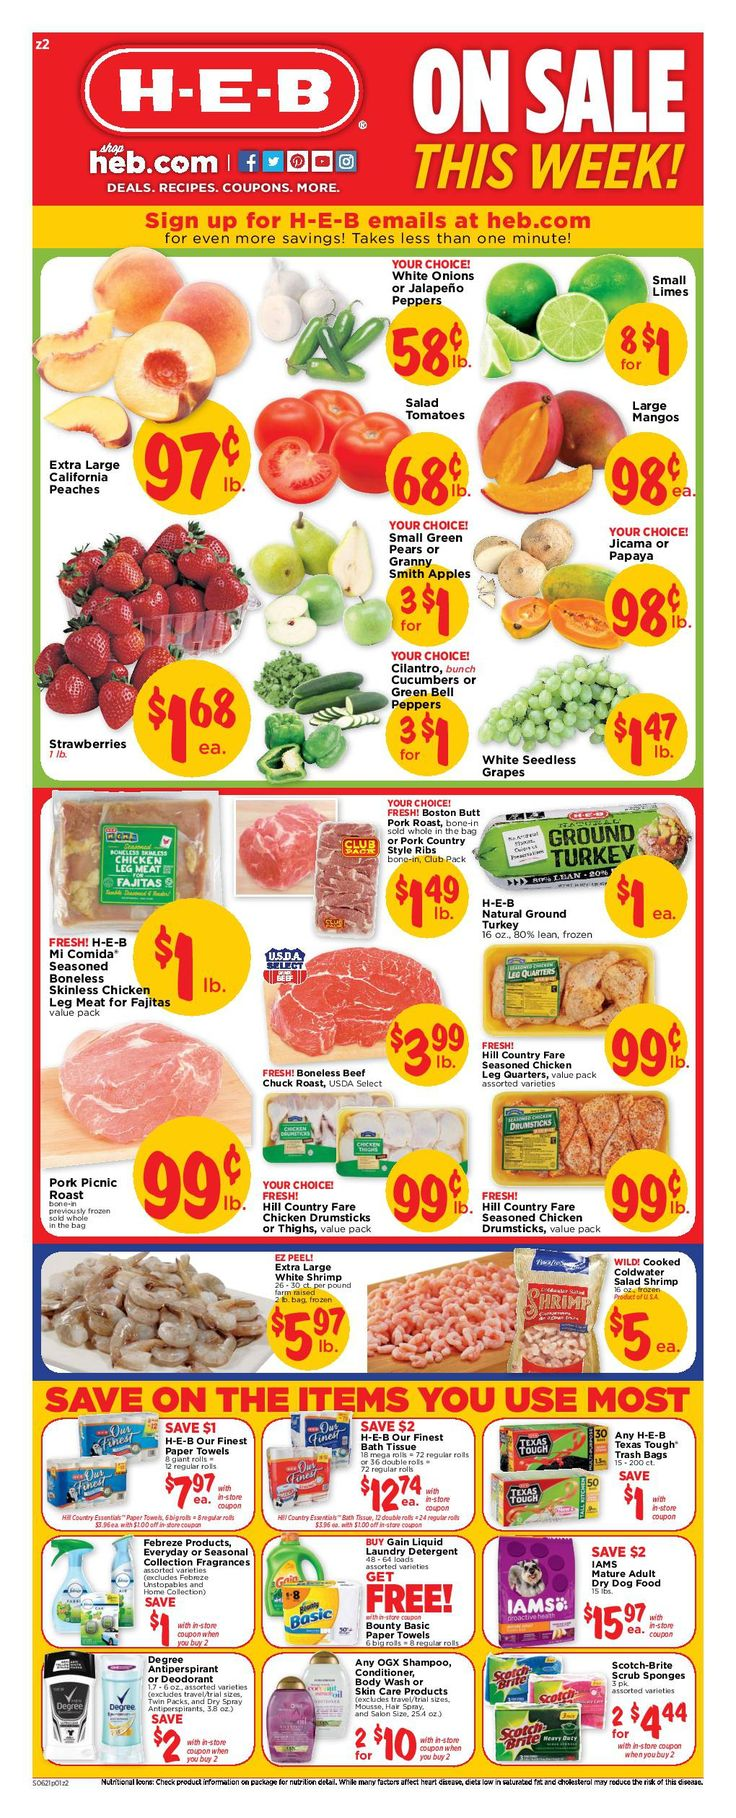 HEB Weekly Ad June 21 – 27, 2017 – Grocery, HEB weekly circular arrives almost each week but quite often people the Grocery, HEB ad plus they are quick to throw it out. Checking the ads each and every week and clipping the coupons that come within the weekly circulars can really be an incredibly rewarding experience. Grocery, HEB regularly includes coupons which could equate his up to 50% off your purchase. Which means you could attempt out a lot of the hottest a